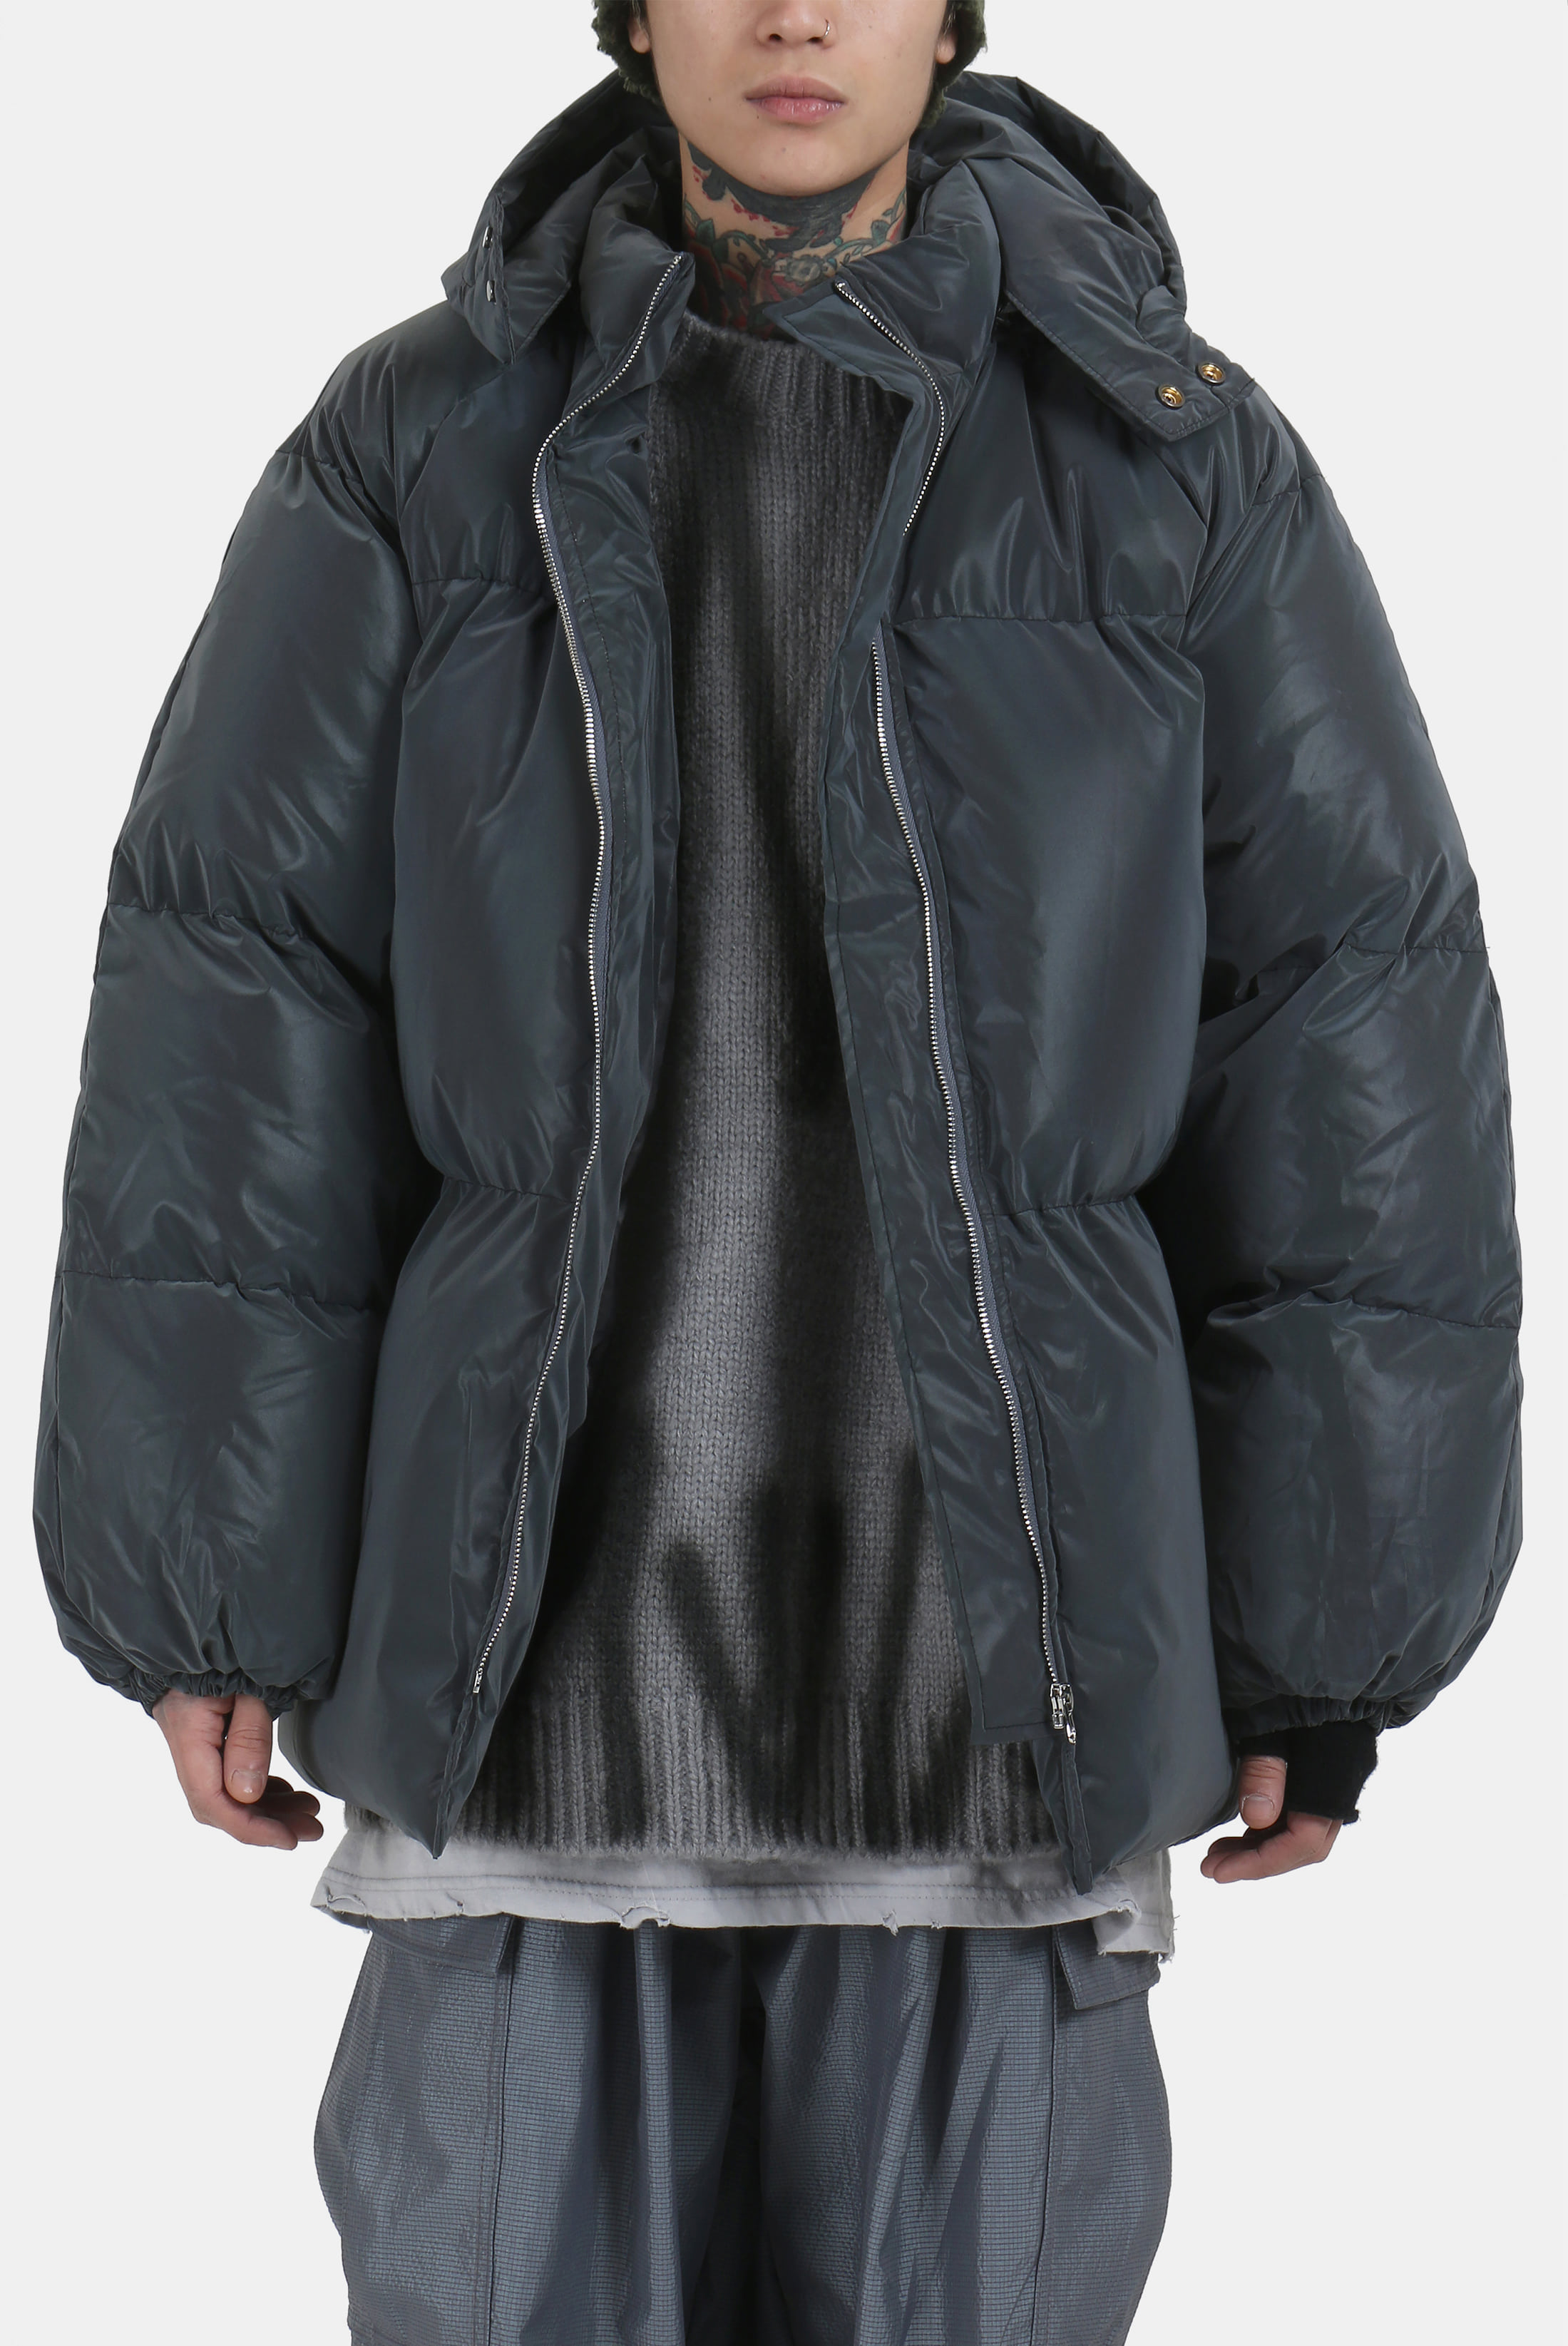 3M Scotch Padding_Jacket